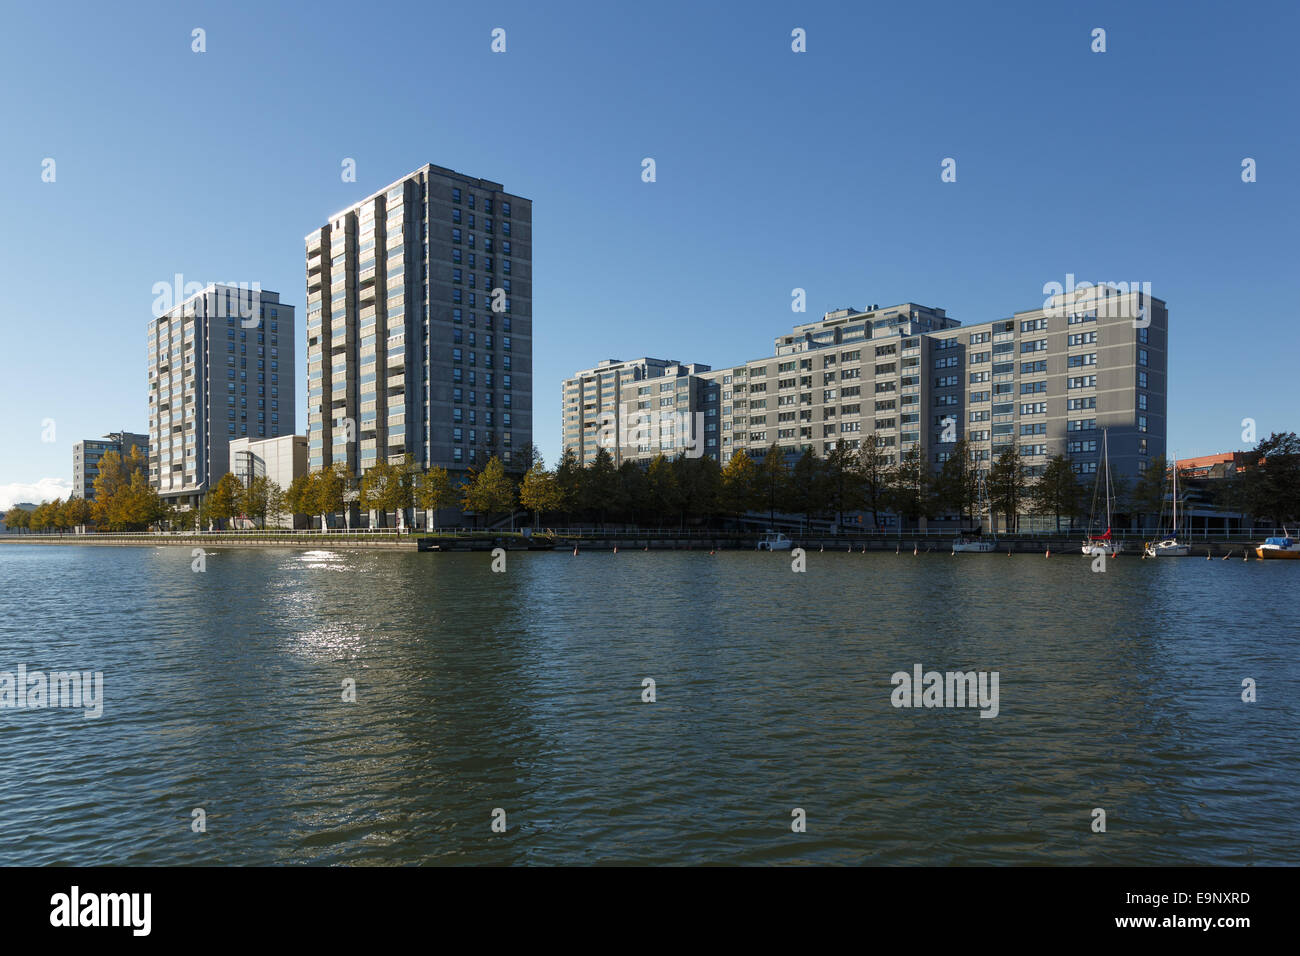 Merihaka is a seashore residential area in central Helsinki, Finland consisting of large high-rise concrete housing Stock Photo